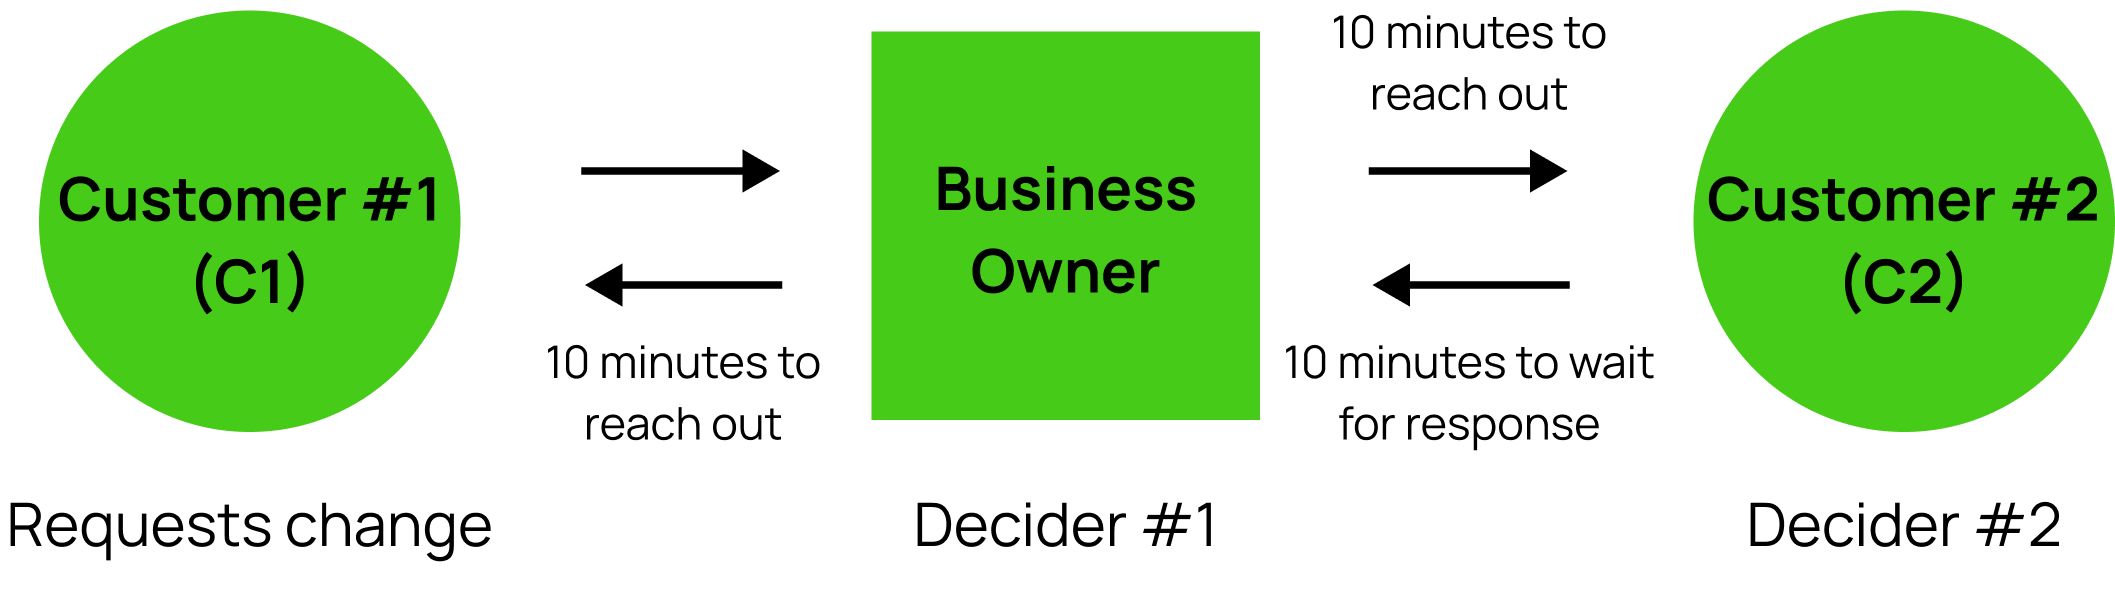 Competitor's system flows